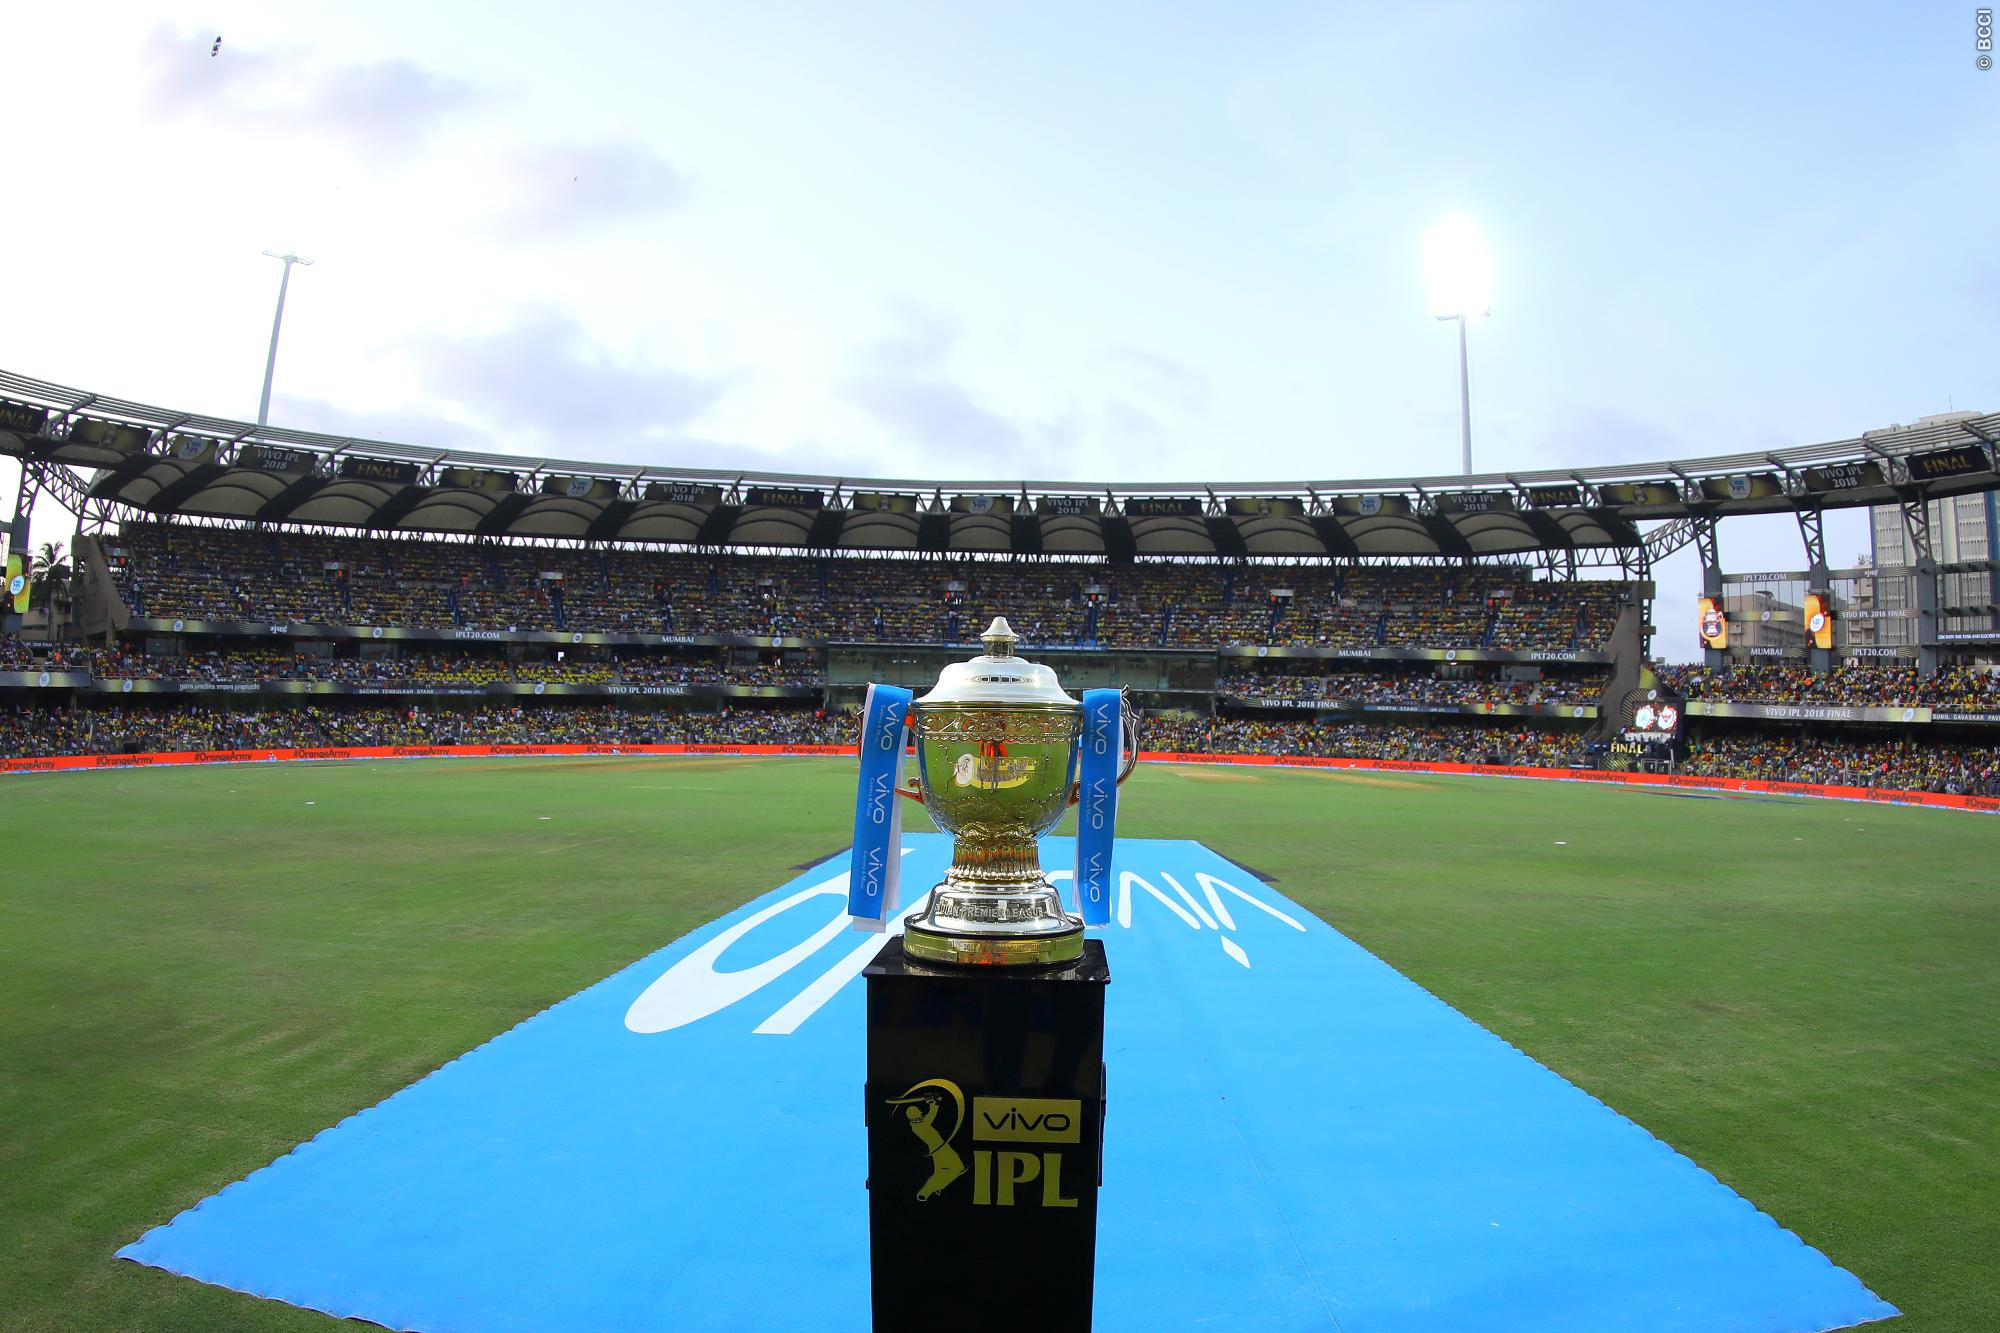 Are you ready for the IPL 12